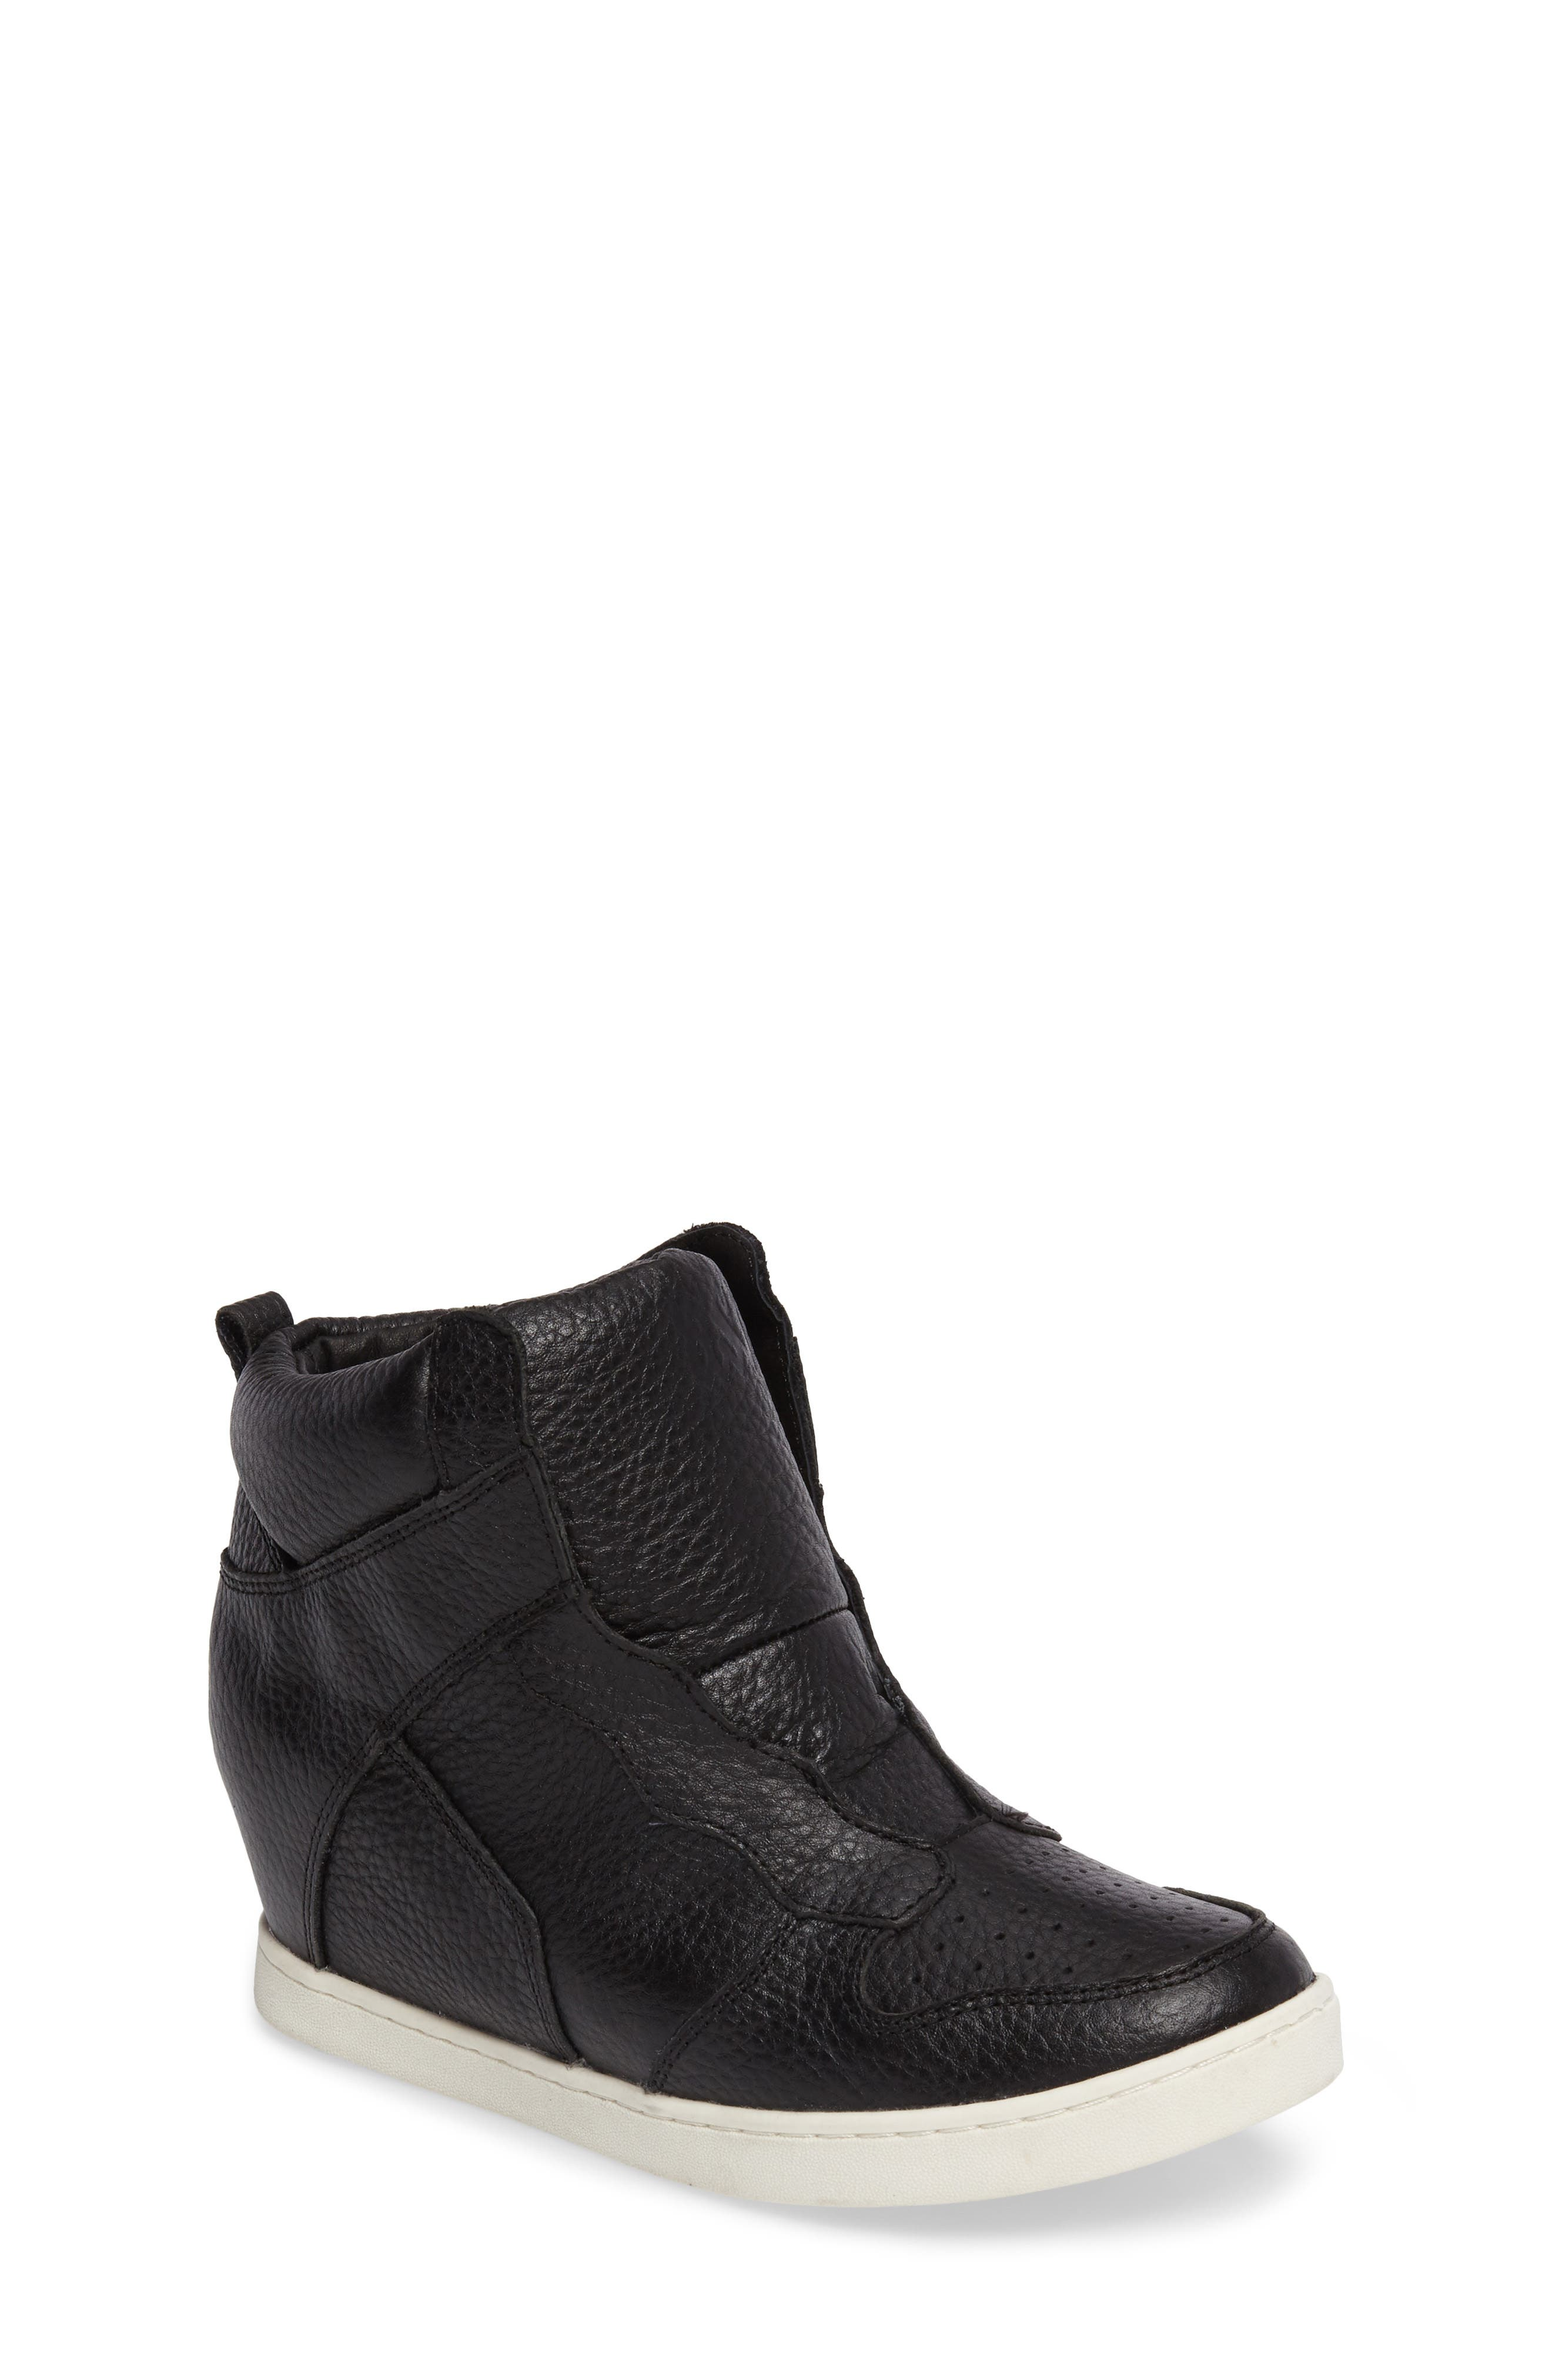 Alternate Image 1 Selected - Ash Syndey Laceless Concealed Wedge Bootie (Toddler, Little Kid & Big Kid)